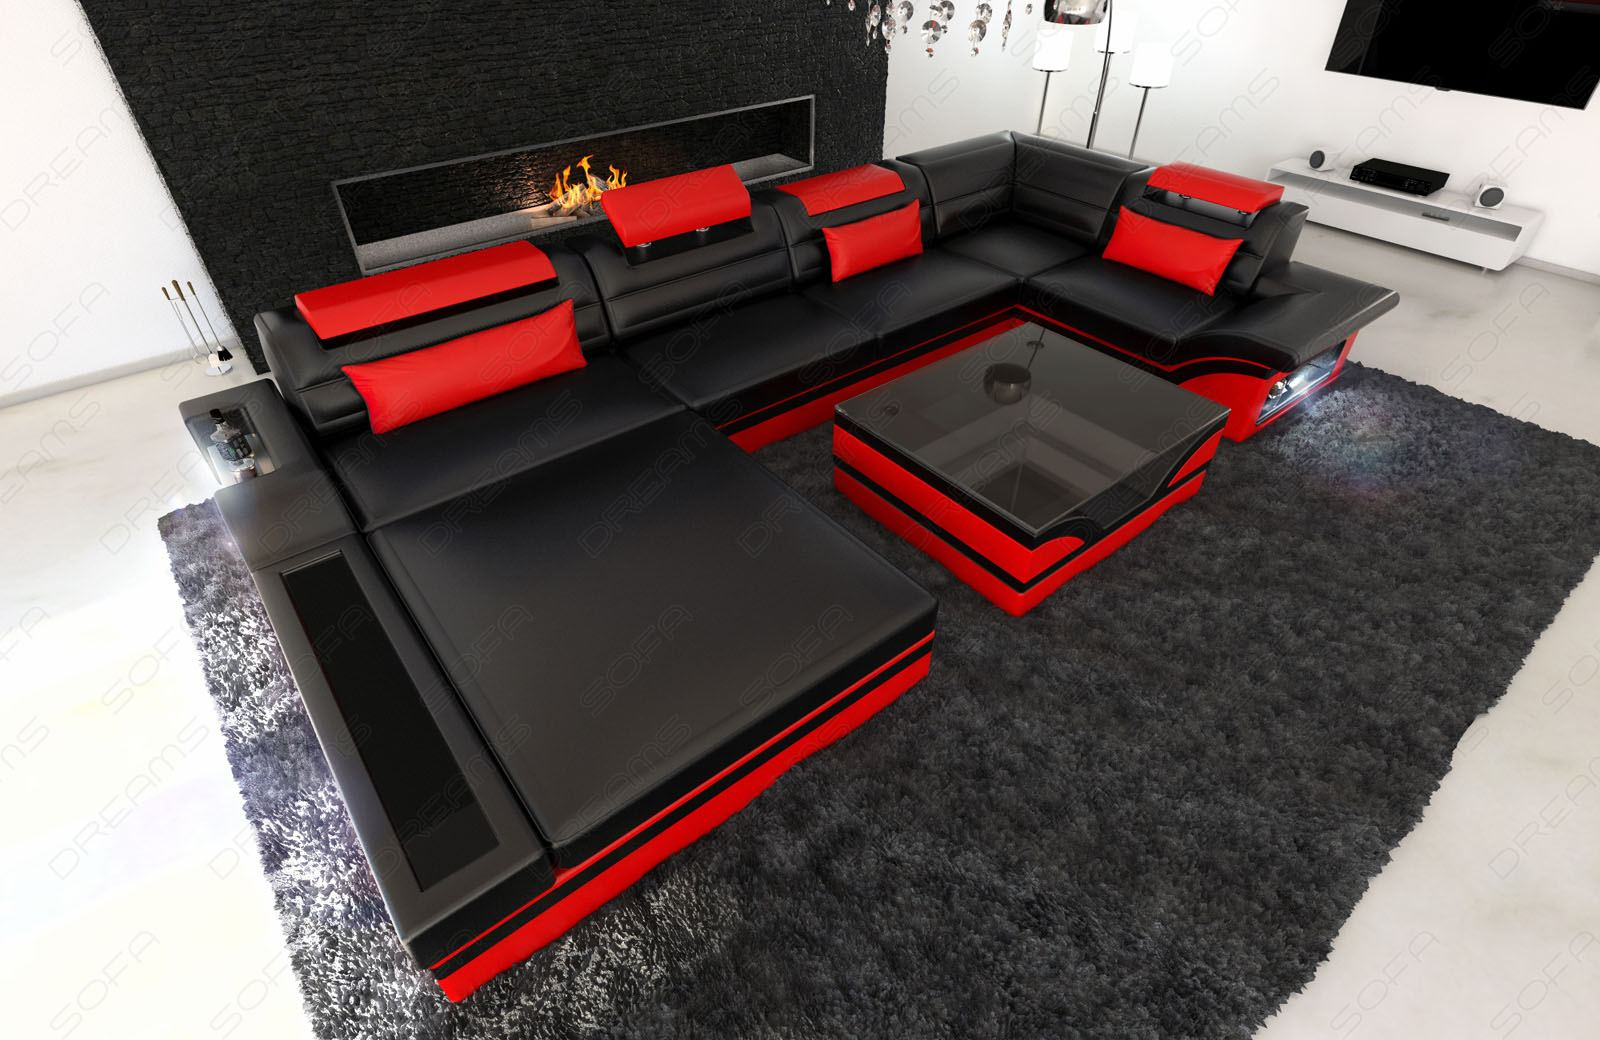 design leather sofa mezzo with led lights black red ebay. Black Bedroom Furniture Sets. Home Design Ideas